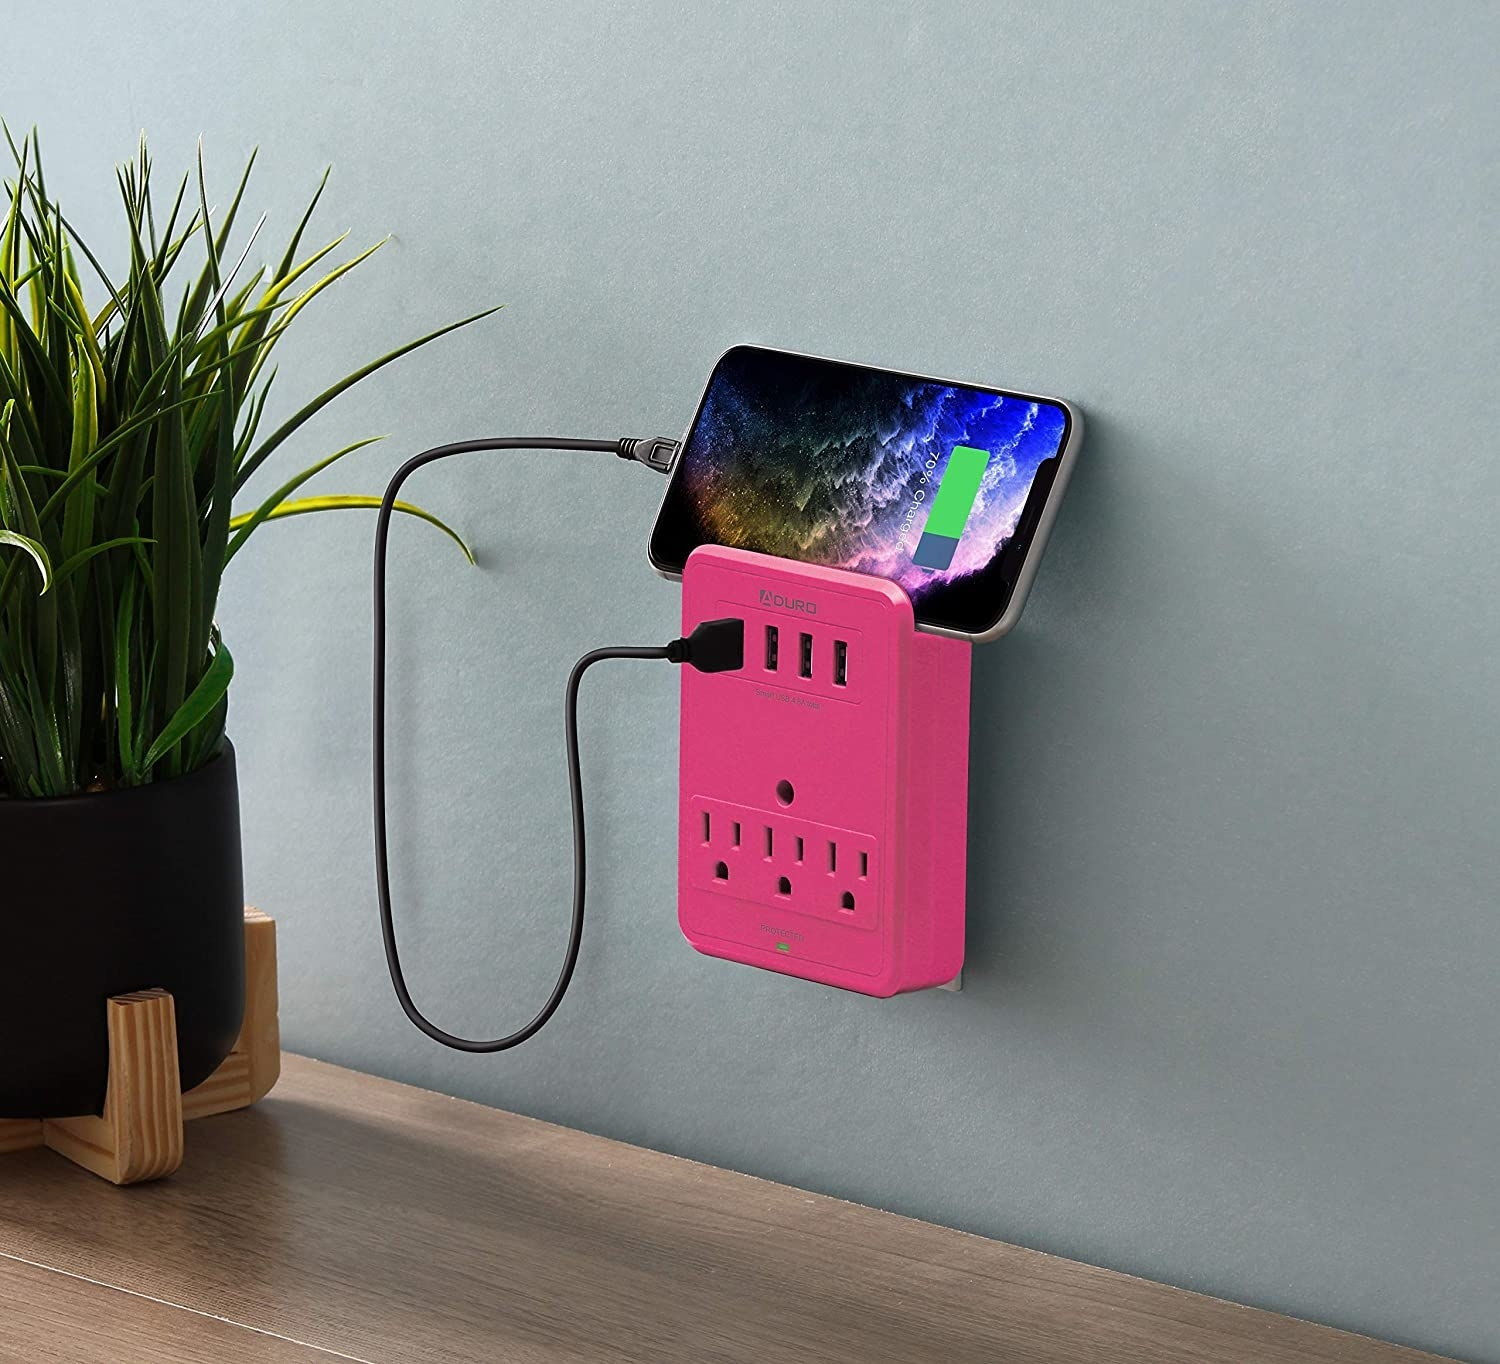 The surge-protecting outlet with a phone plugged into it